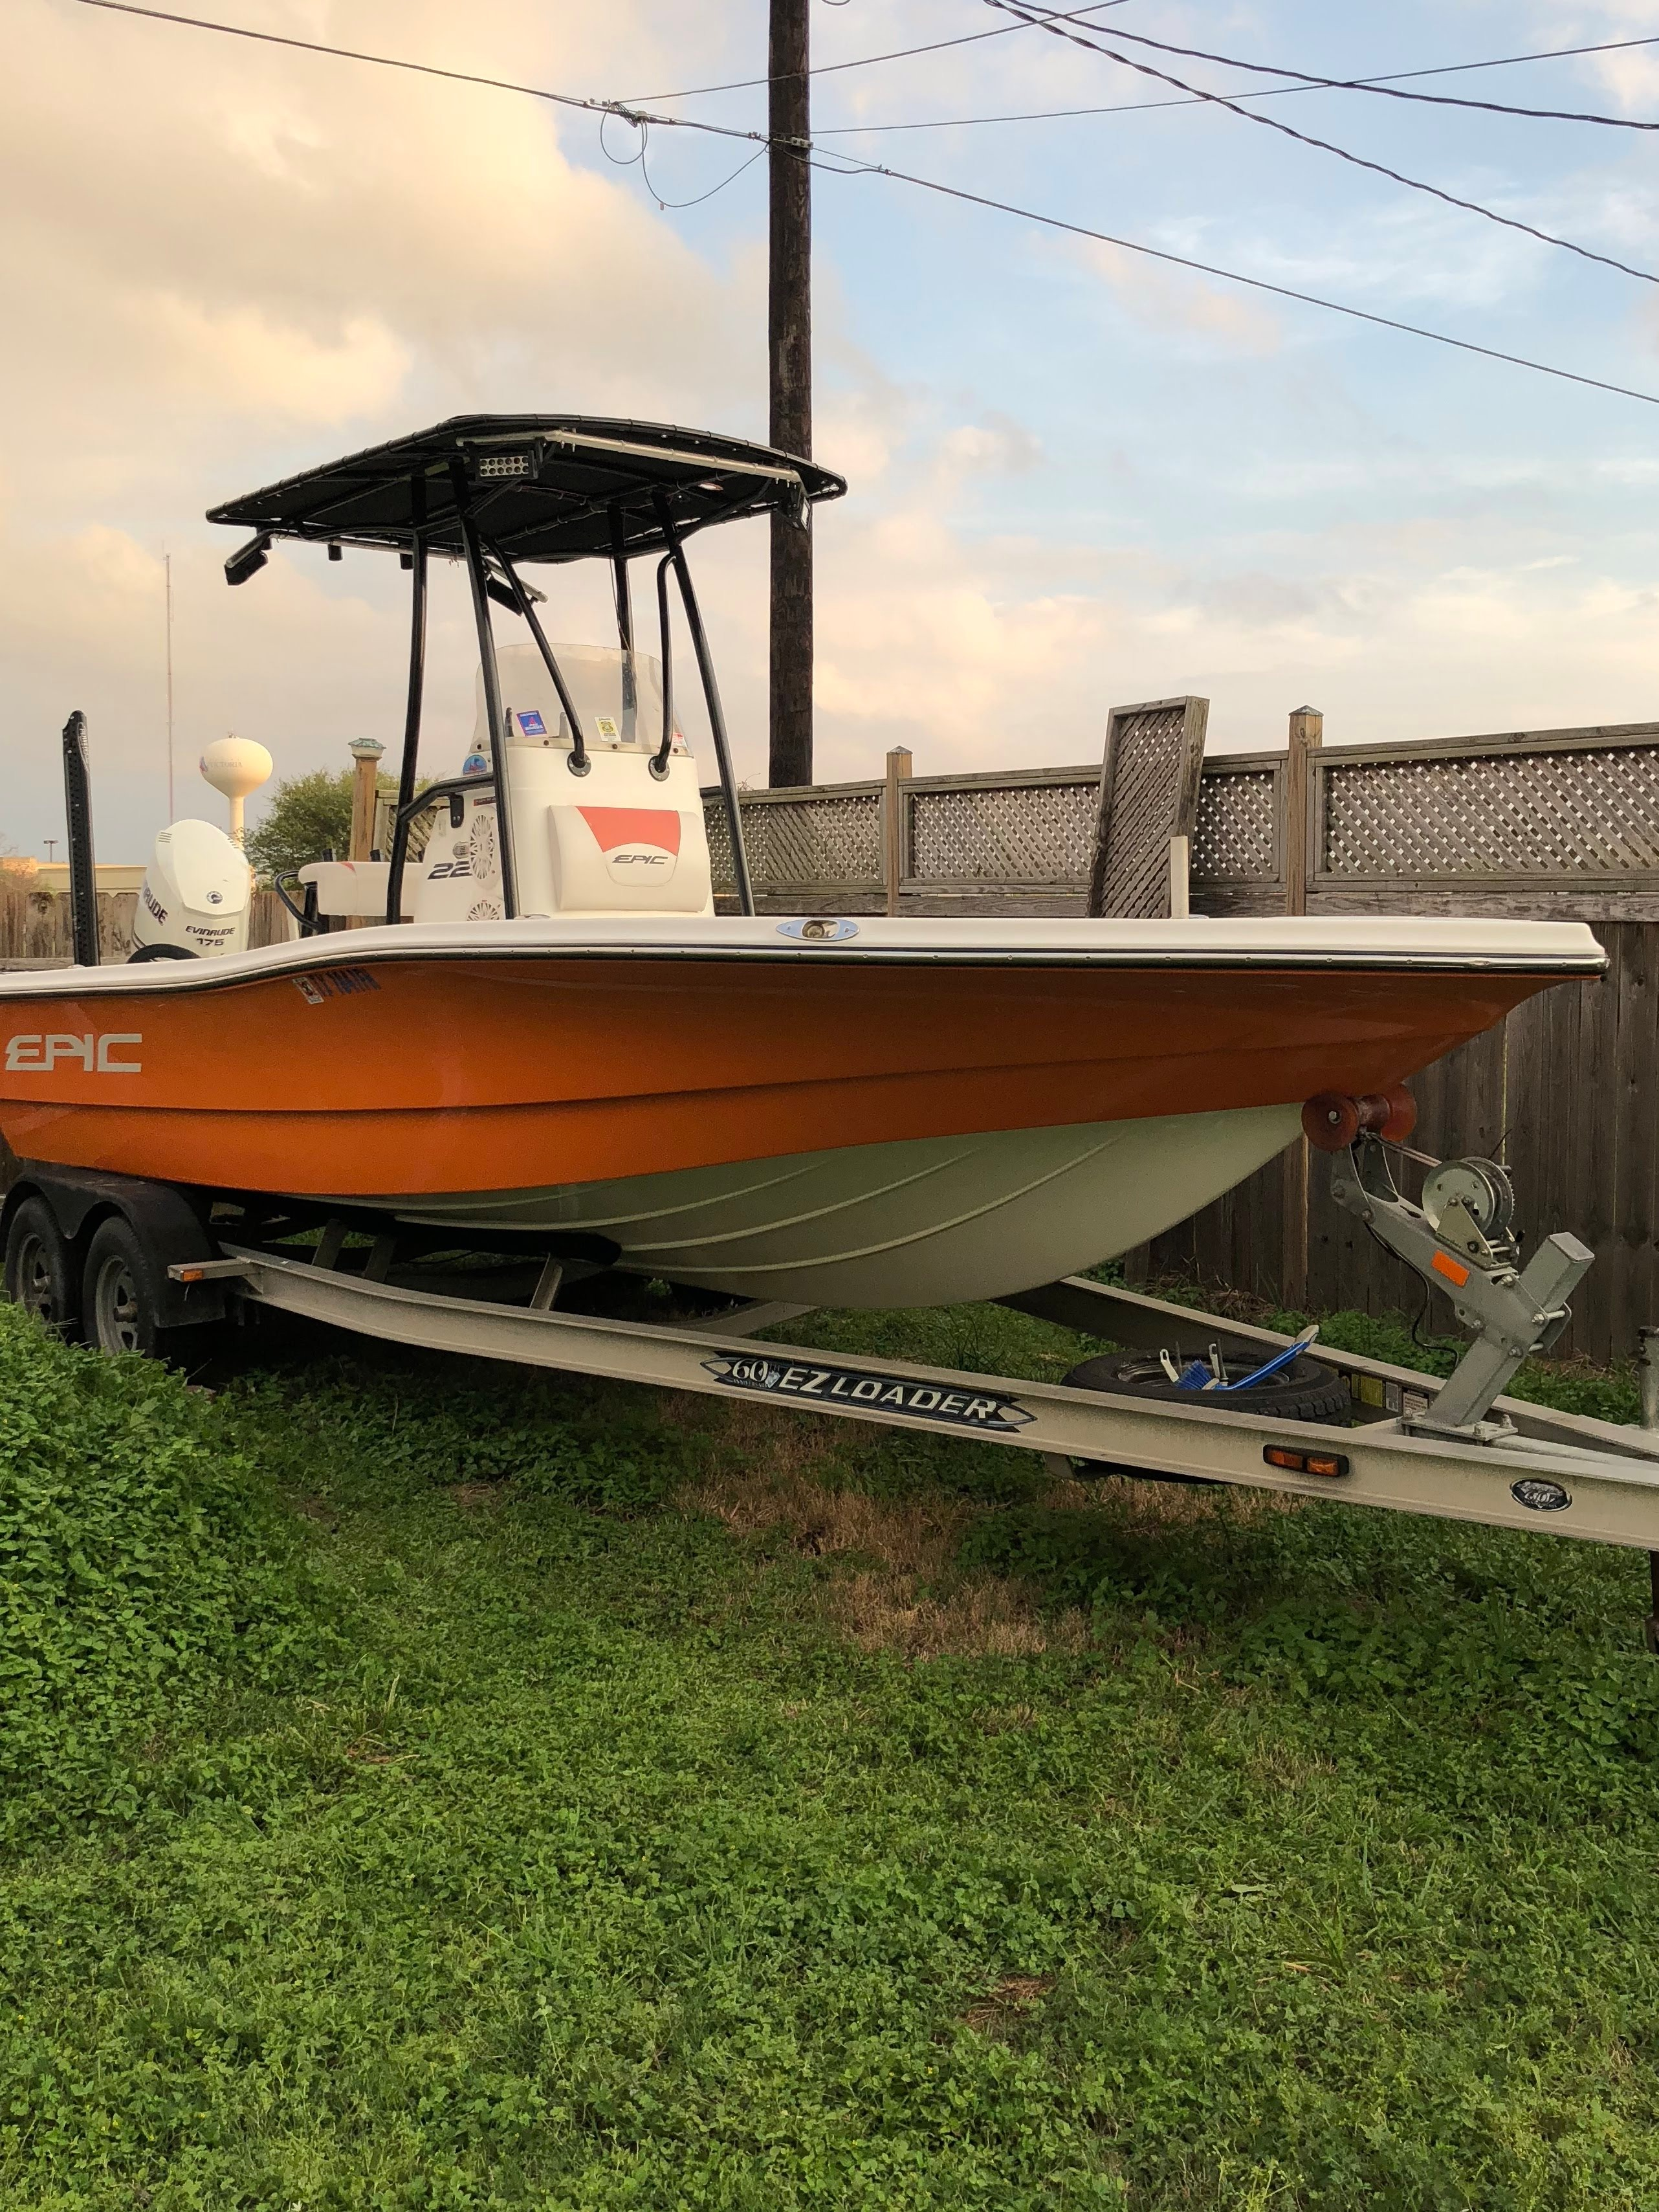 Tidewater Boats For Sale >> Bay boats for sale - boats.com